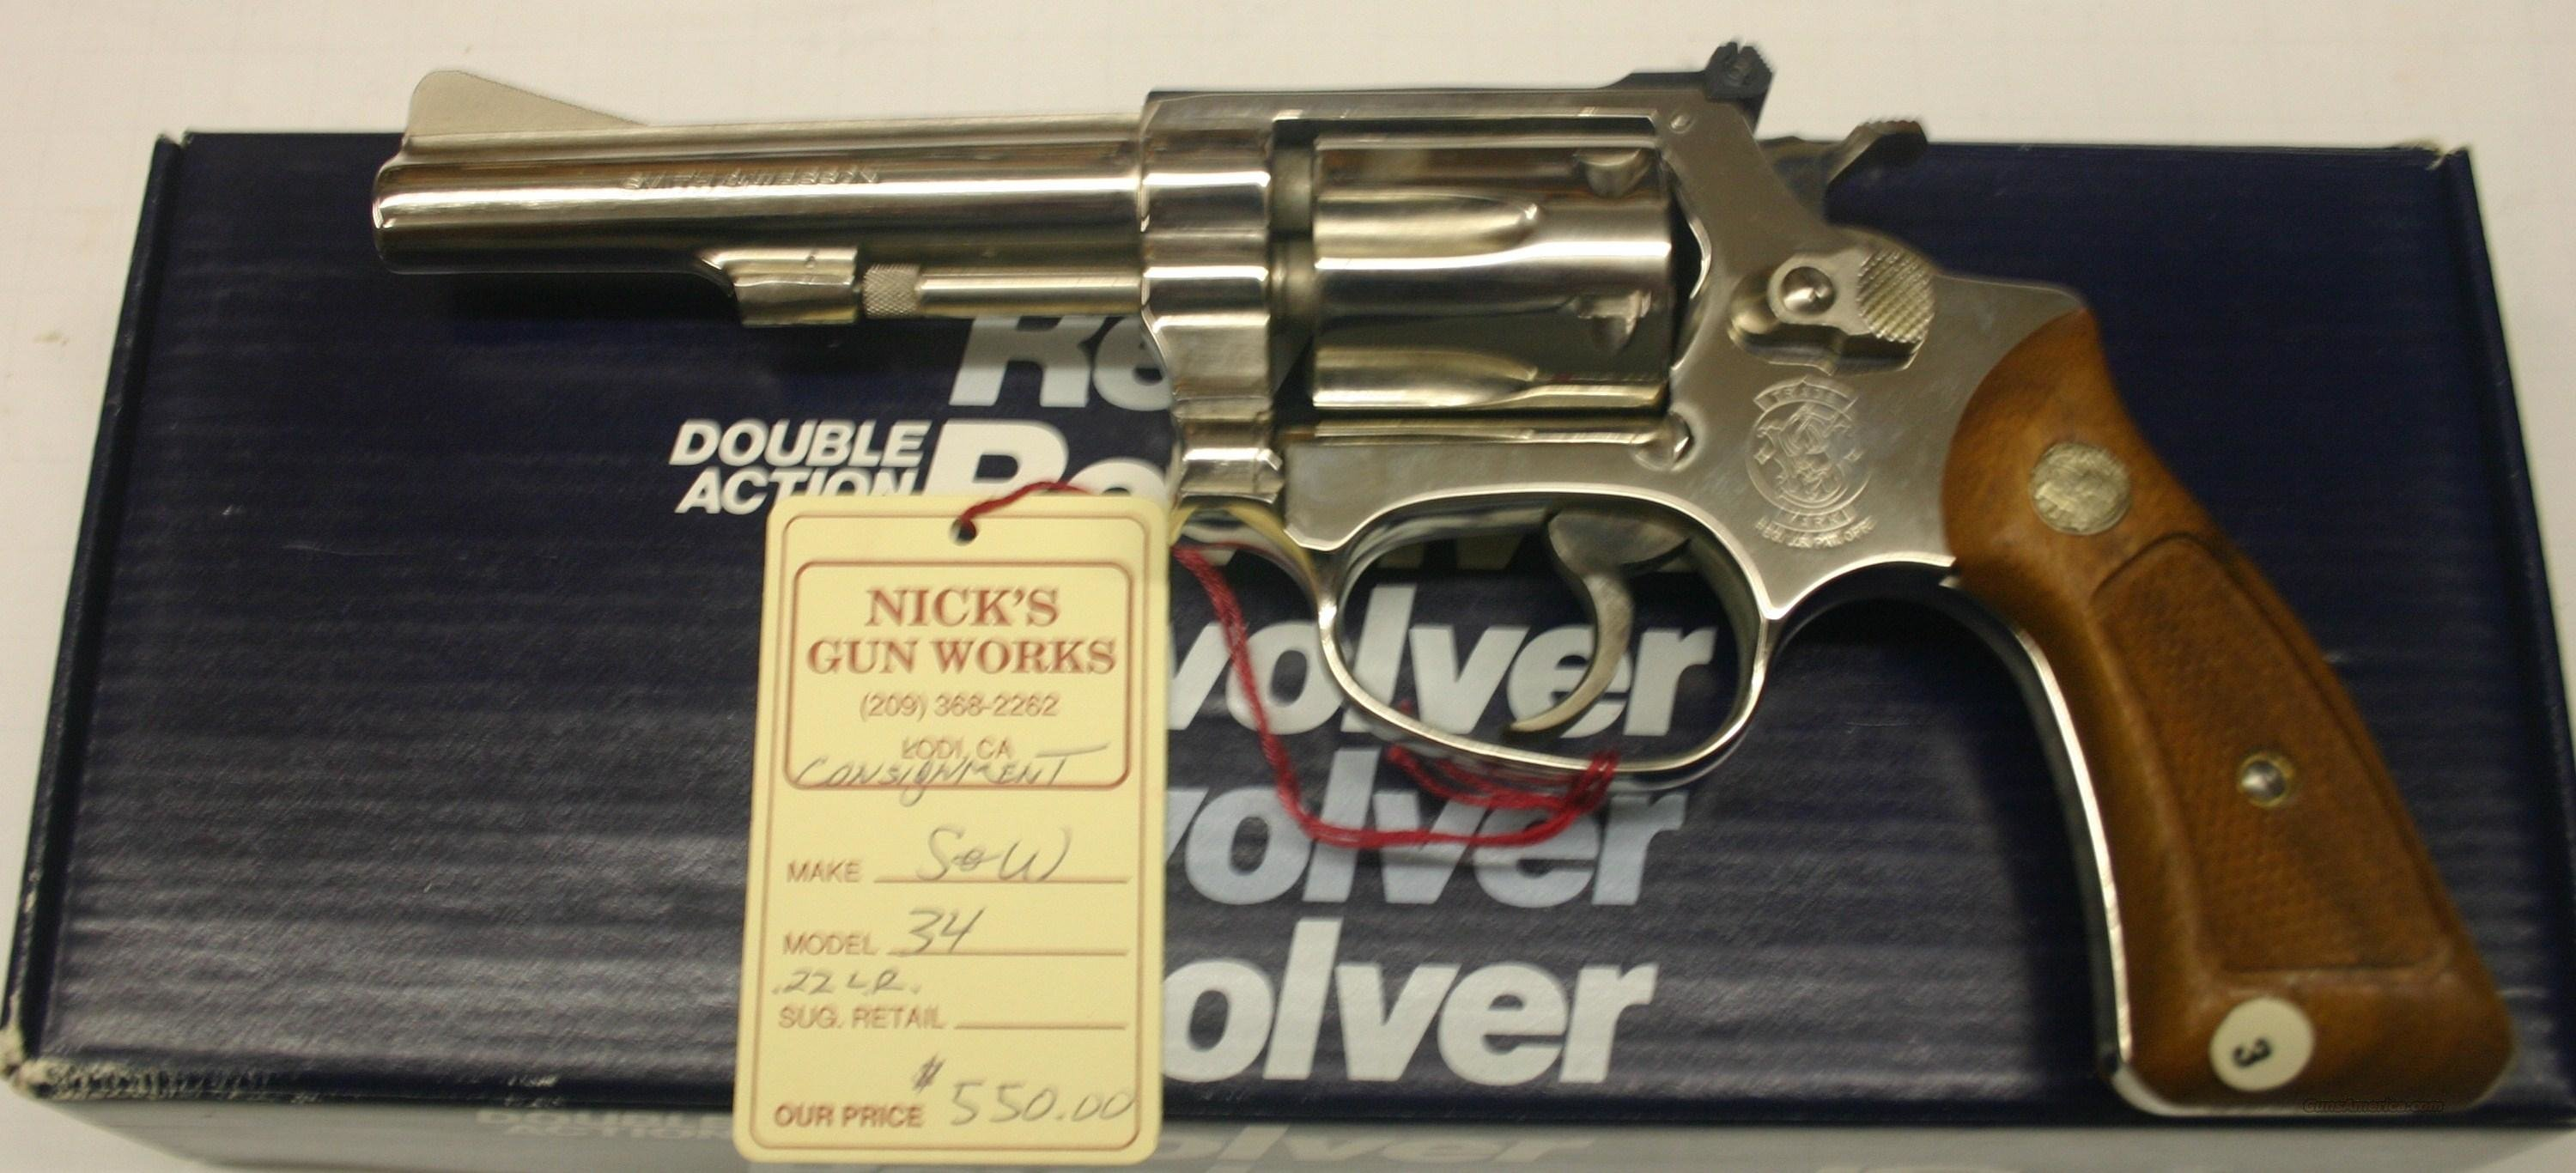 Smith & Wesson Model 34 .22LR NIB  Guns > Pistols > Smith & Wesson Revolvers > Full Frame Revolver